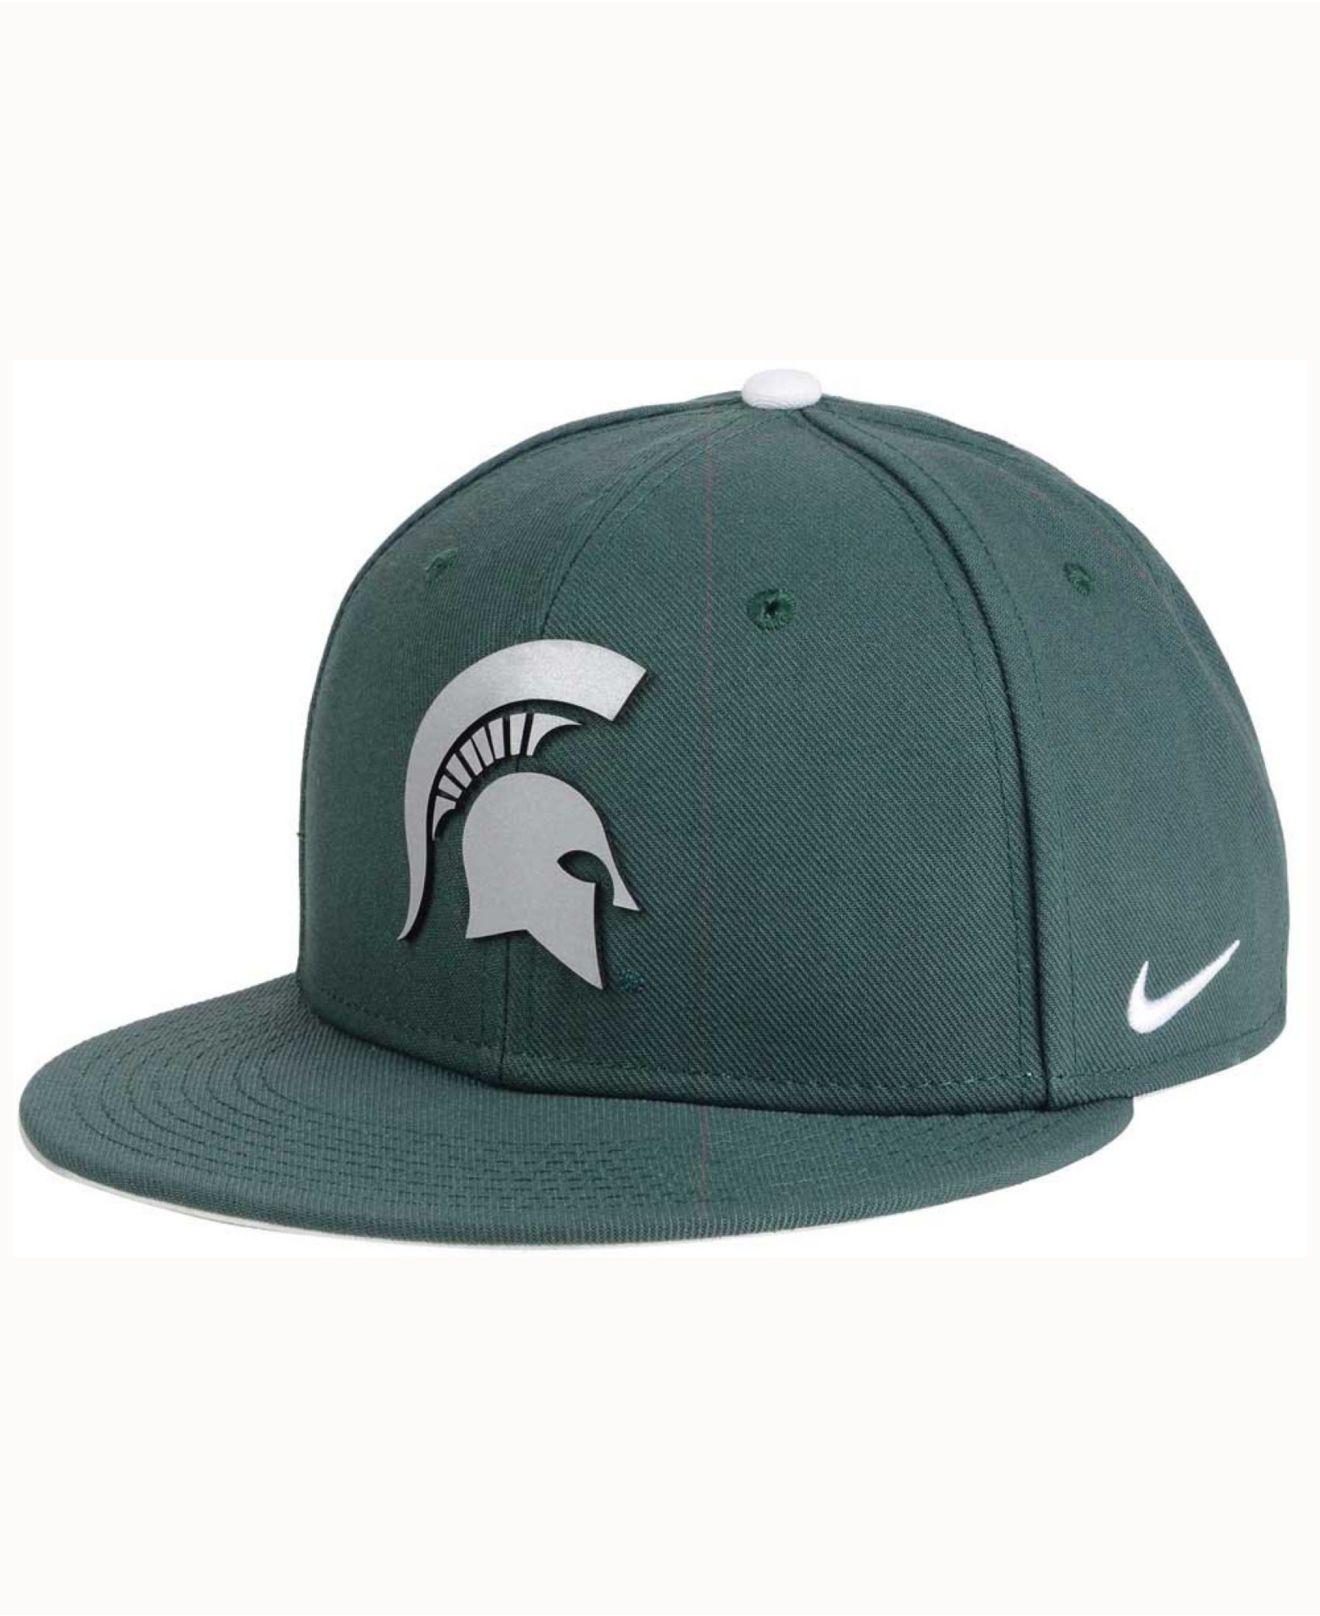 info for 9b5cd 79904 ... usa lyst nike michigan state spartans true reflective snapback cap in  1a88b eab1b